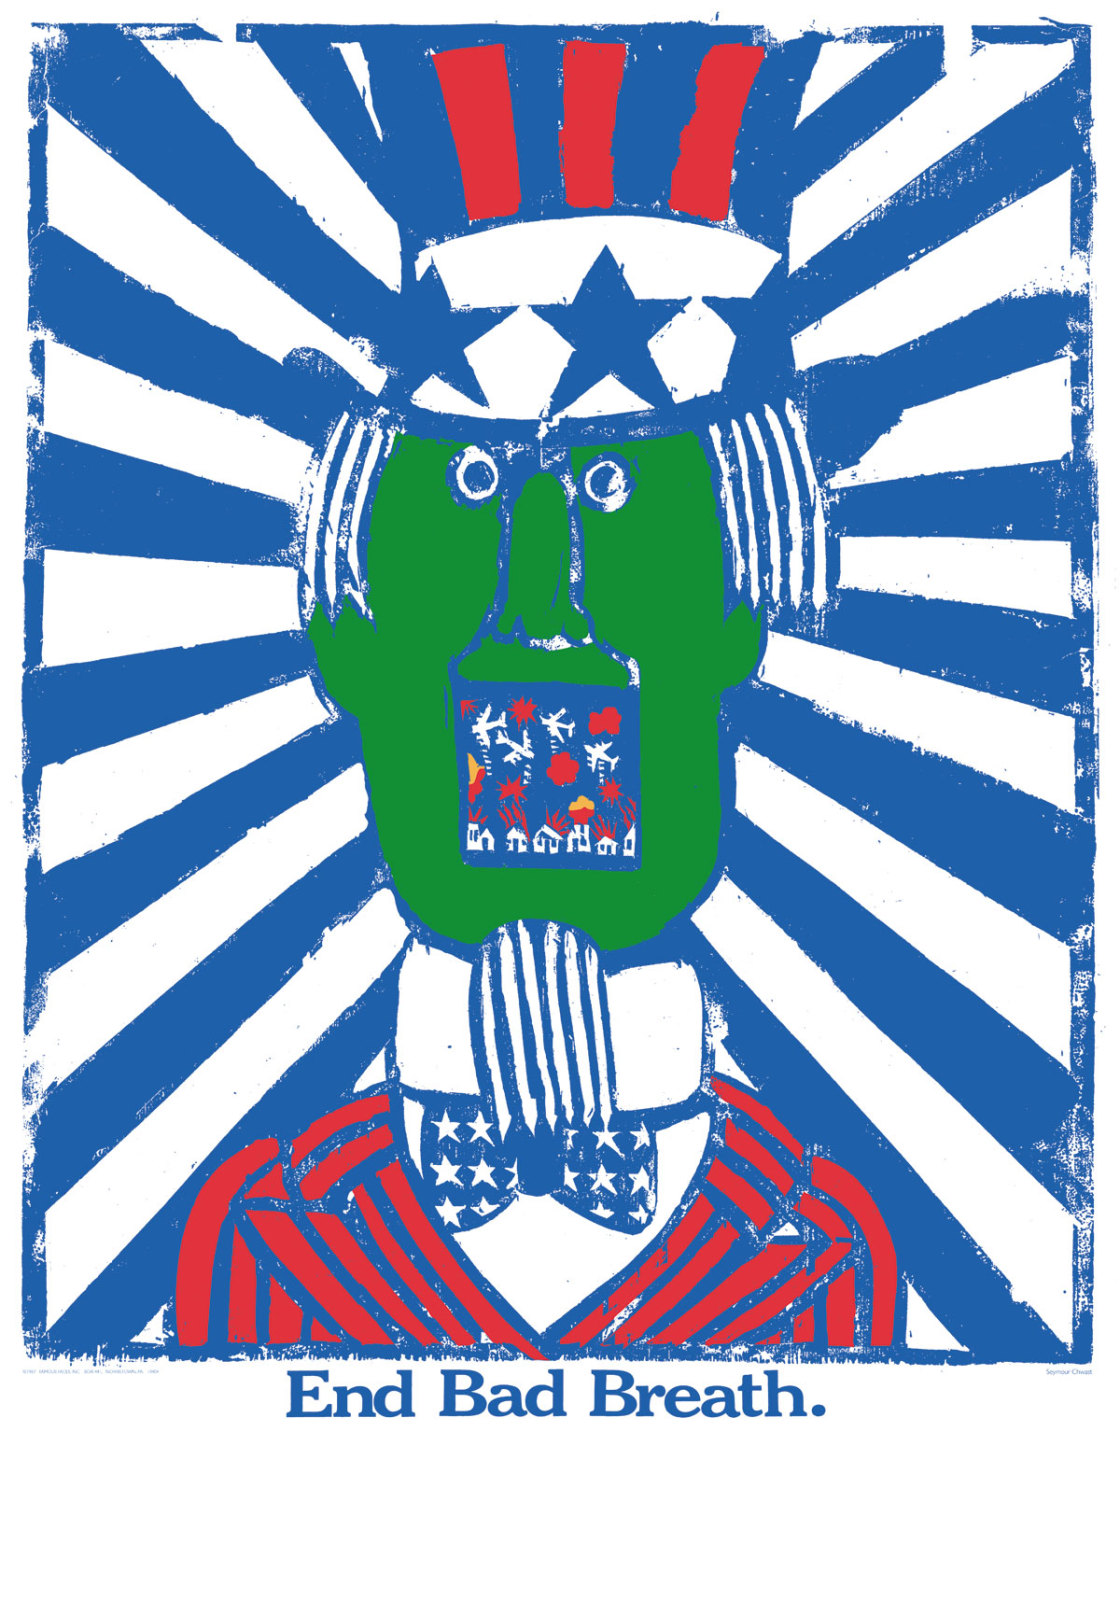 illustrational poster of a man with a green face wearing a suit with the American flag's colors